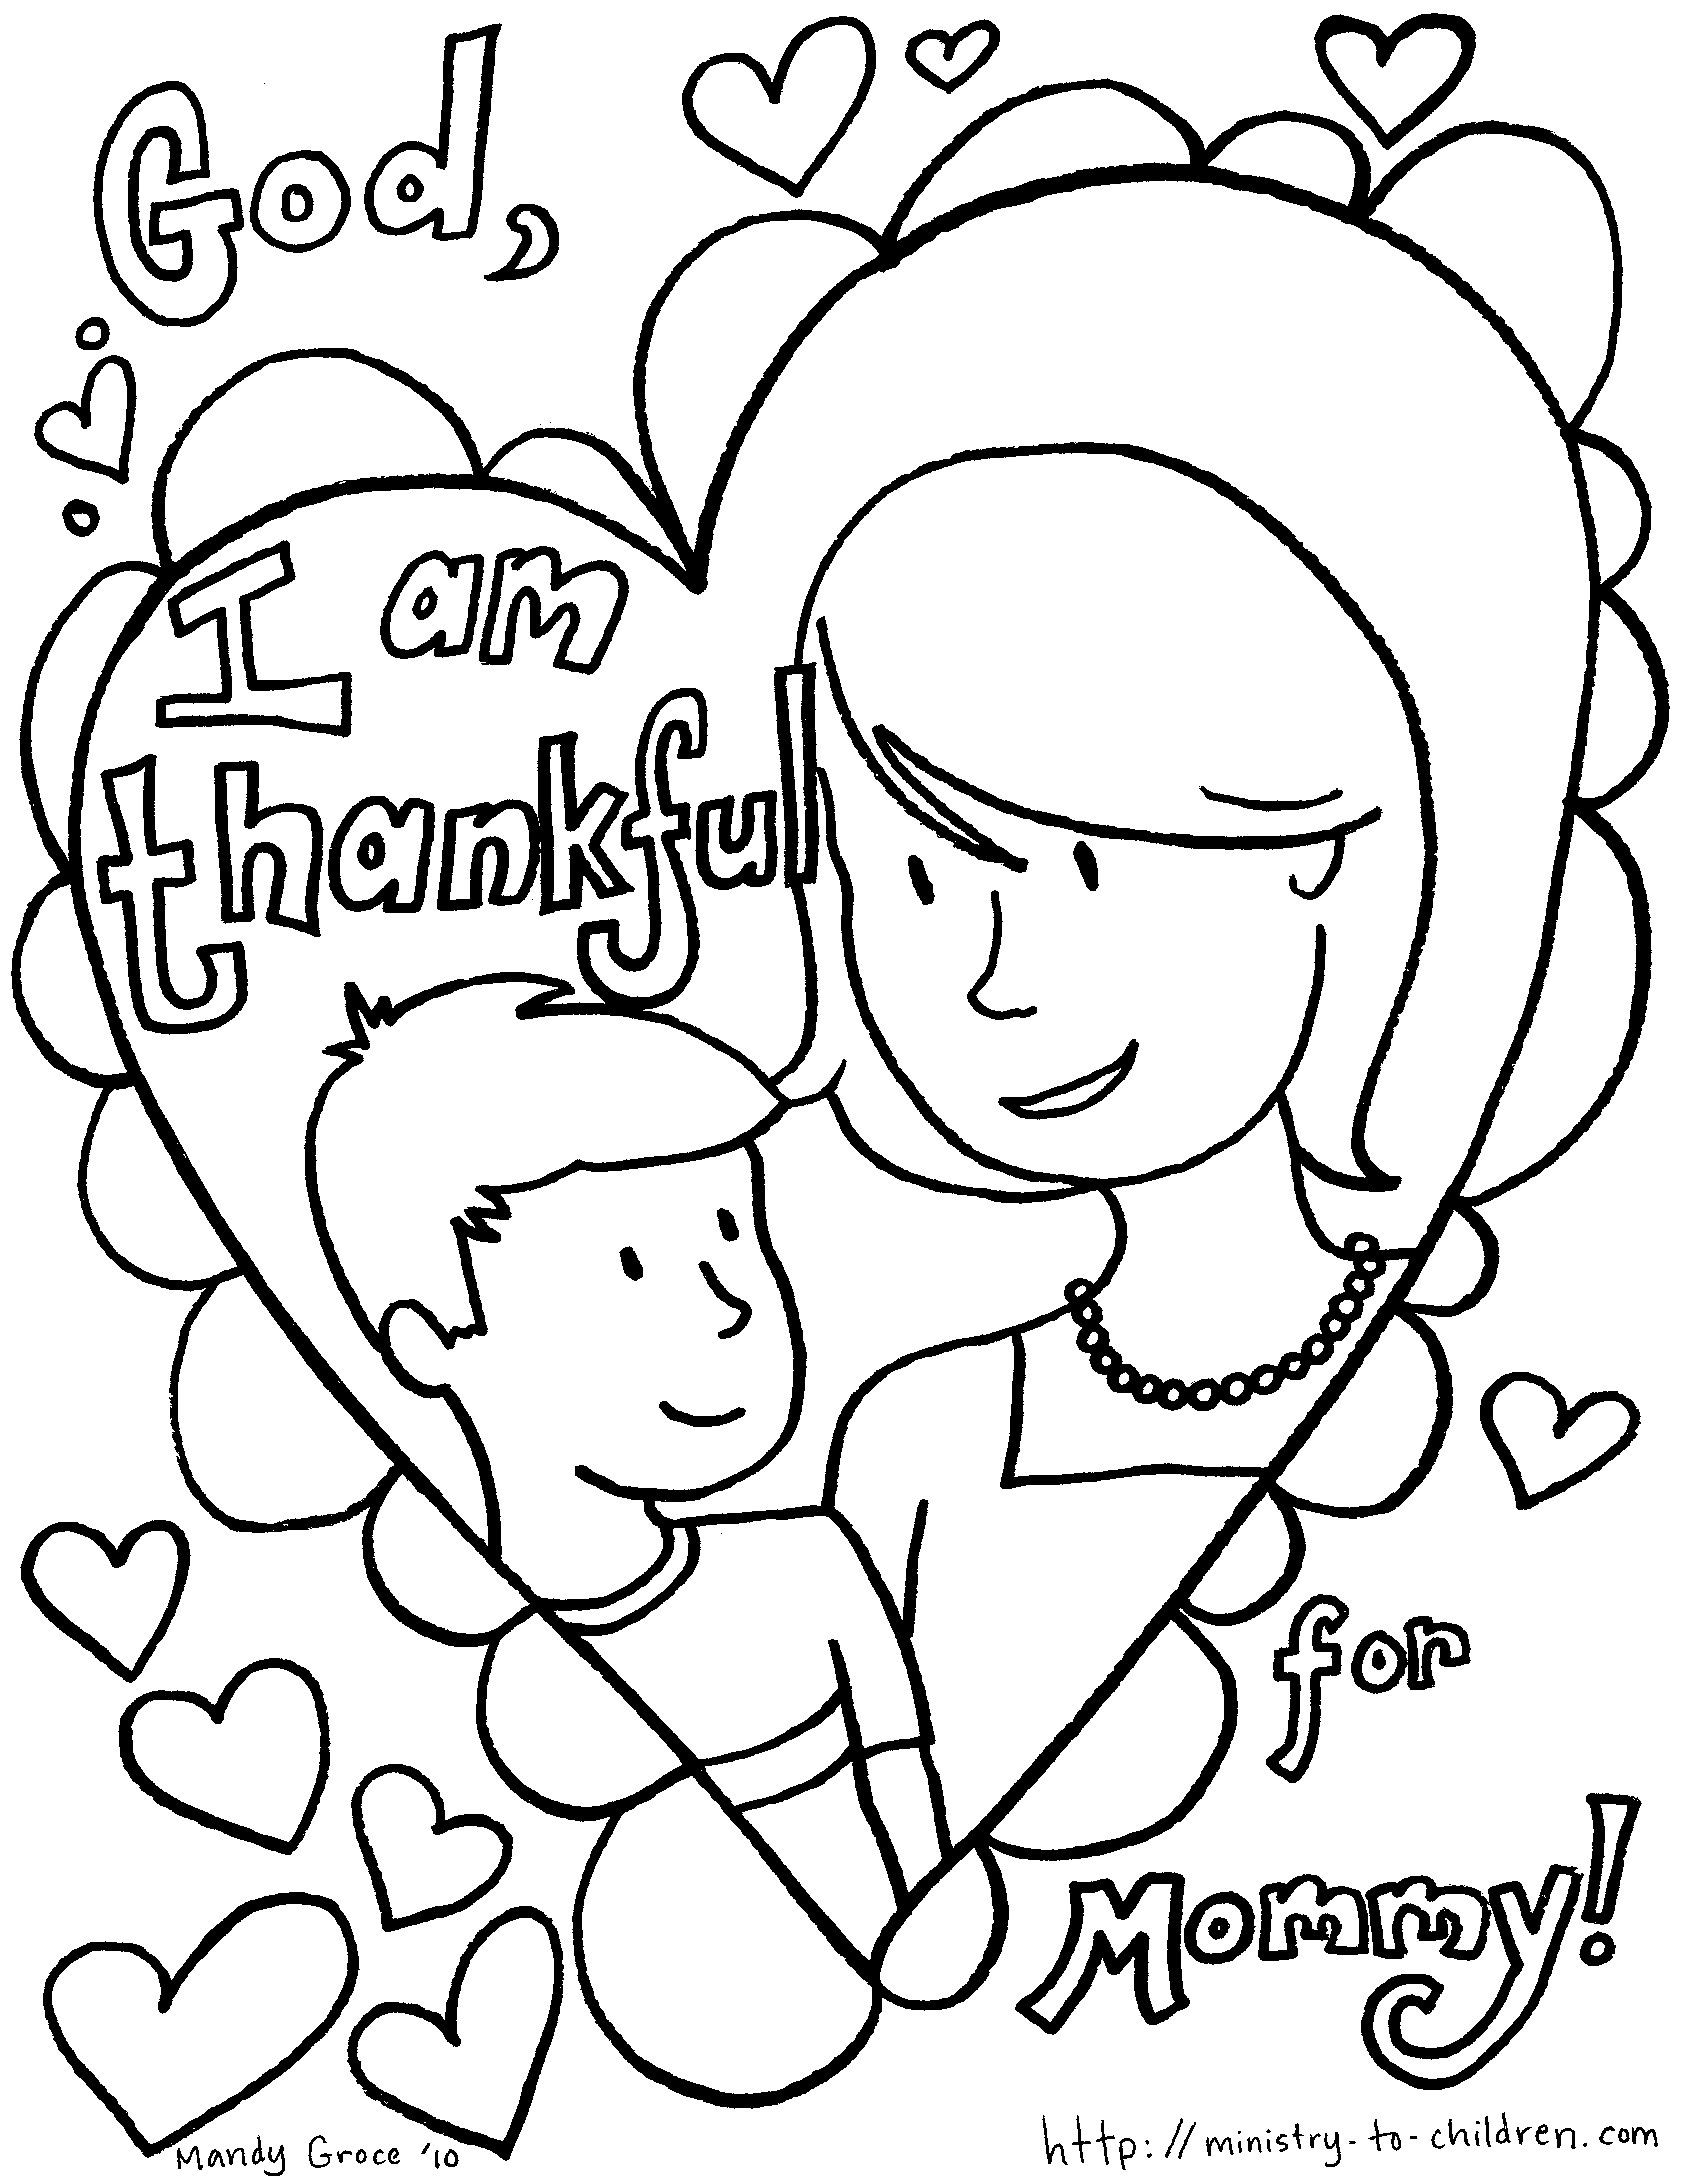 Free mothers day coloring pages for kids ~ Mother's Day coloring page | ΓΙΟΡΤΗ ΜΗΤΕΡΑΣ | Mothers day ...